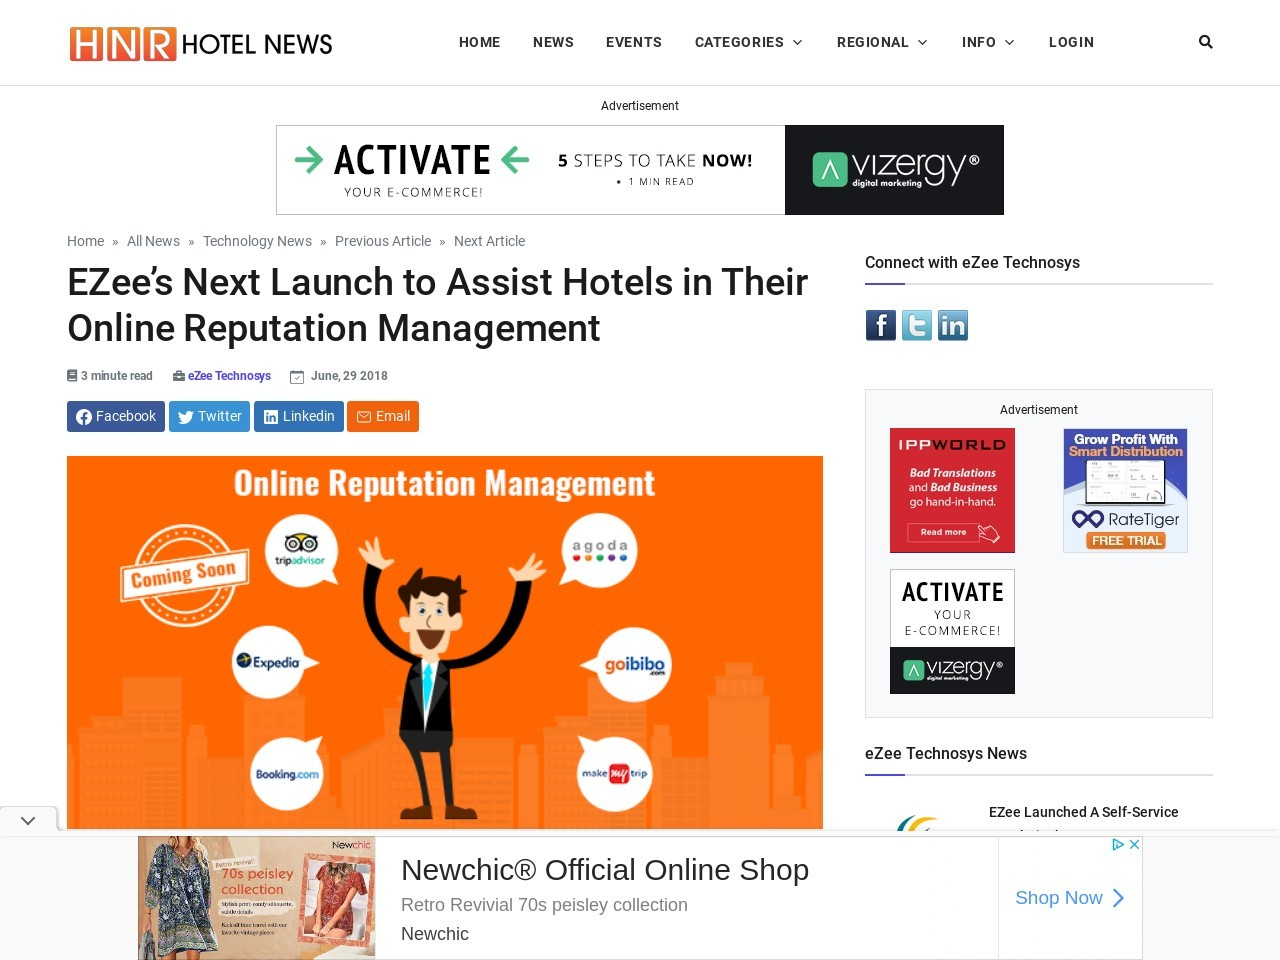 EZee's Next Launch to Assist Hotels in Their Online Reputation Management